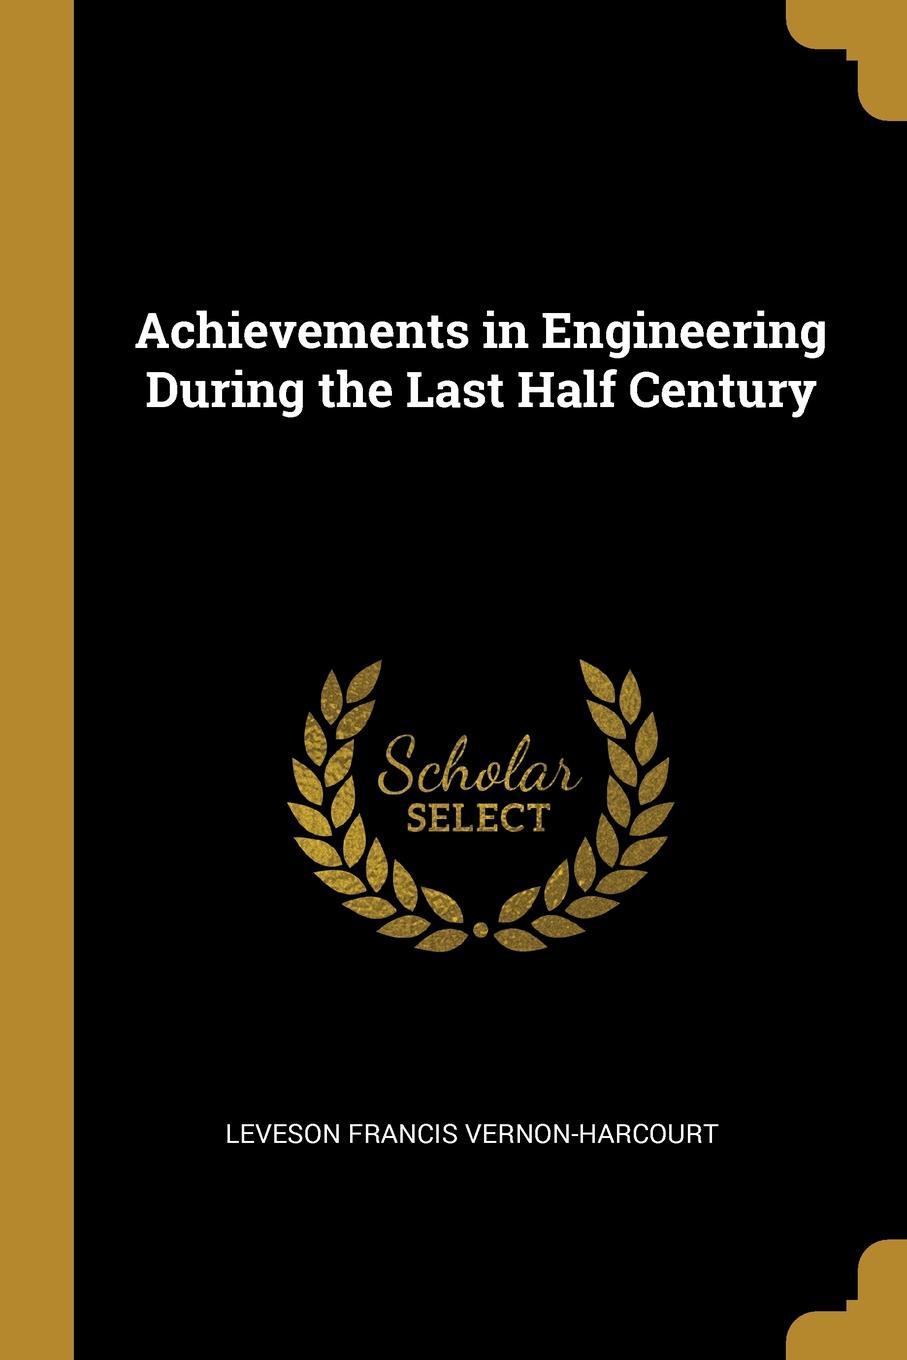 Leveson Francis Vernon-Harcourt Achievements in Engineering During the Last Half Century